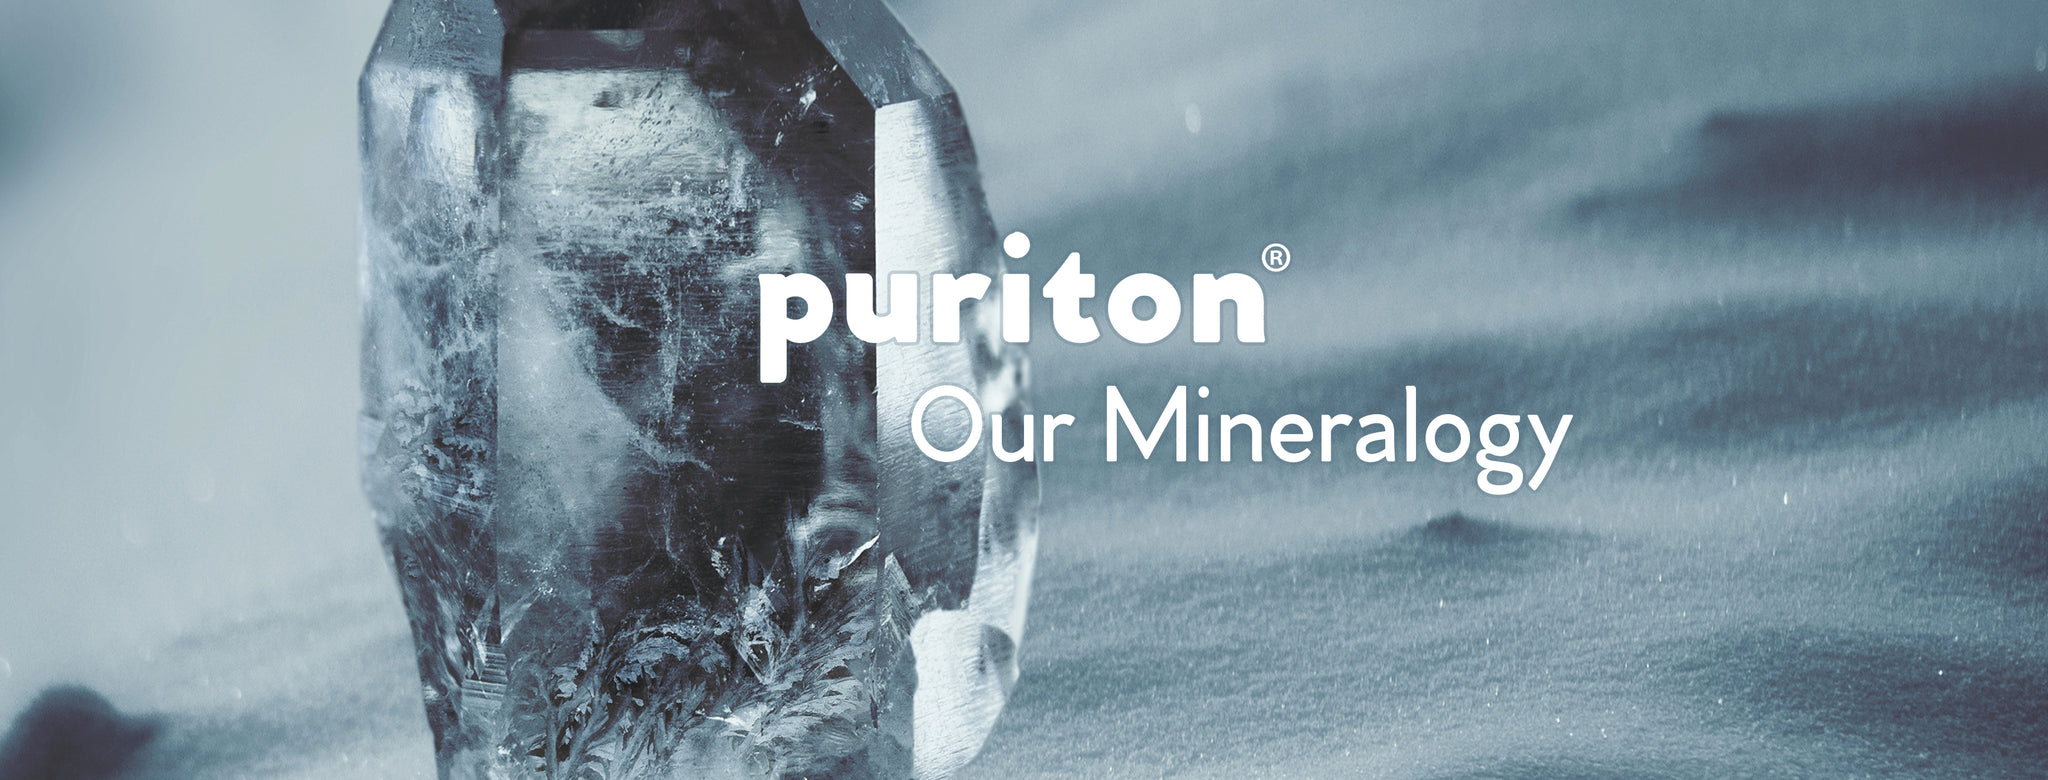 Puriton Mineral Water mineralogy